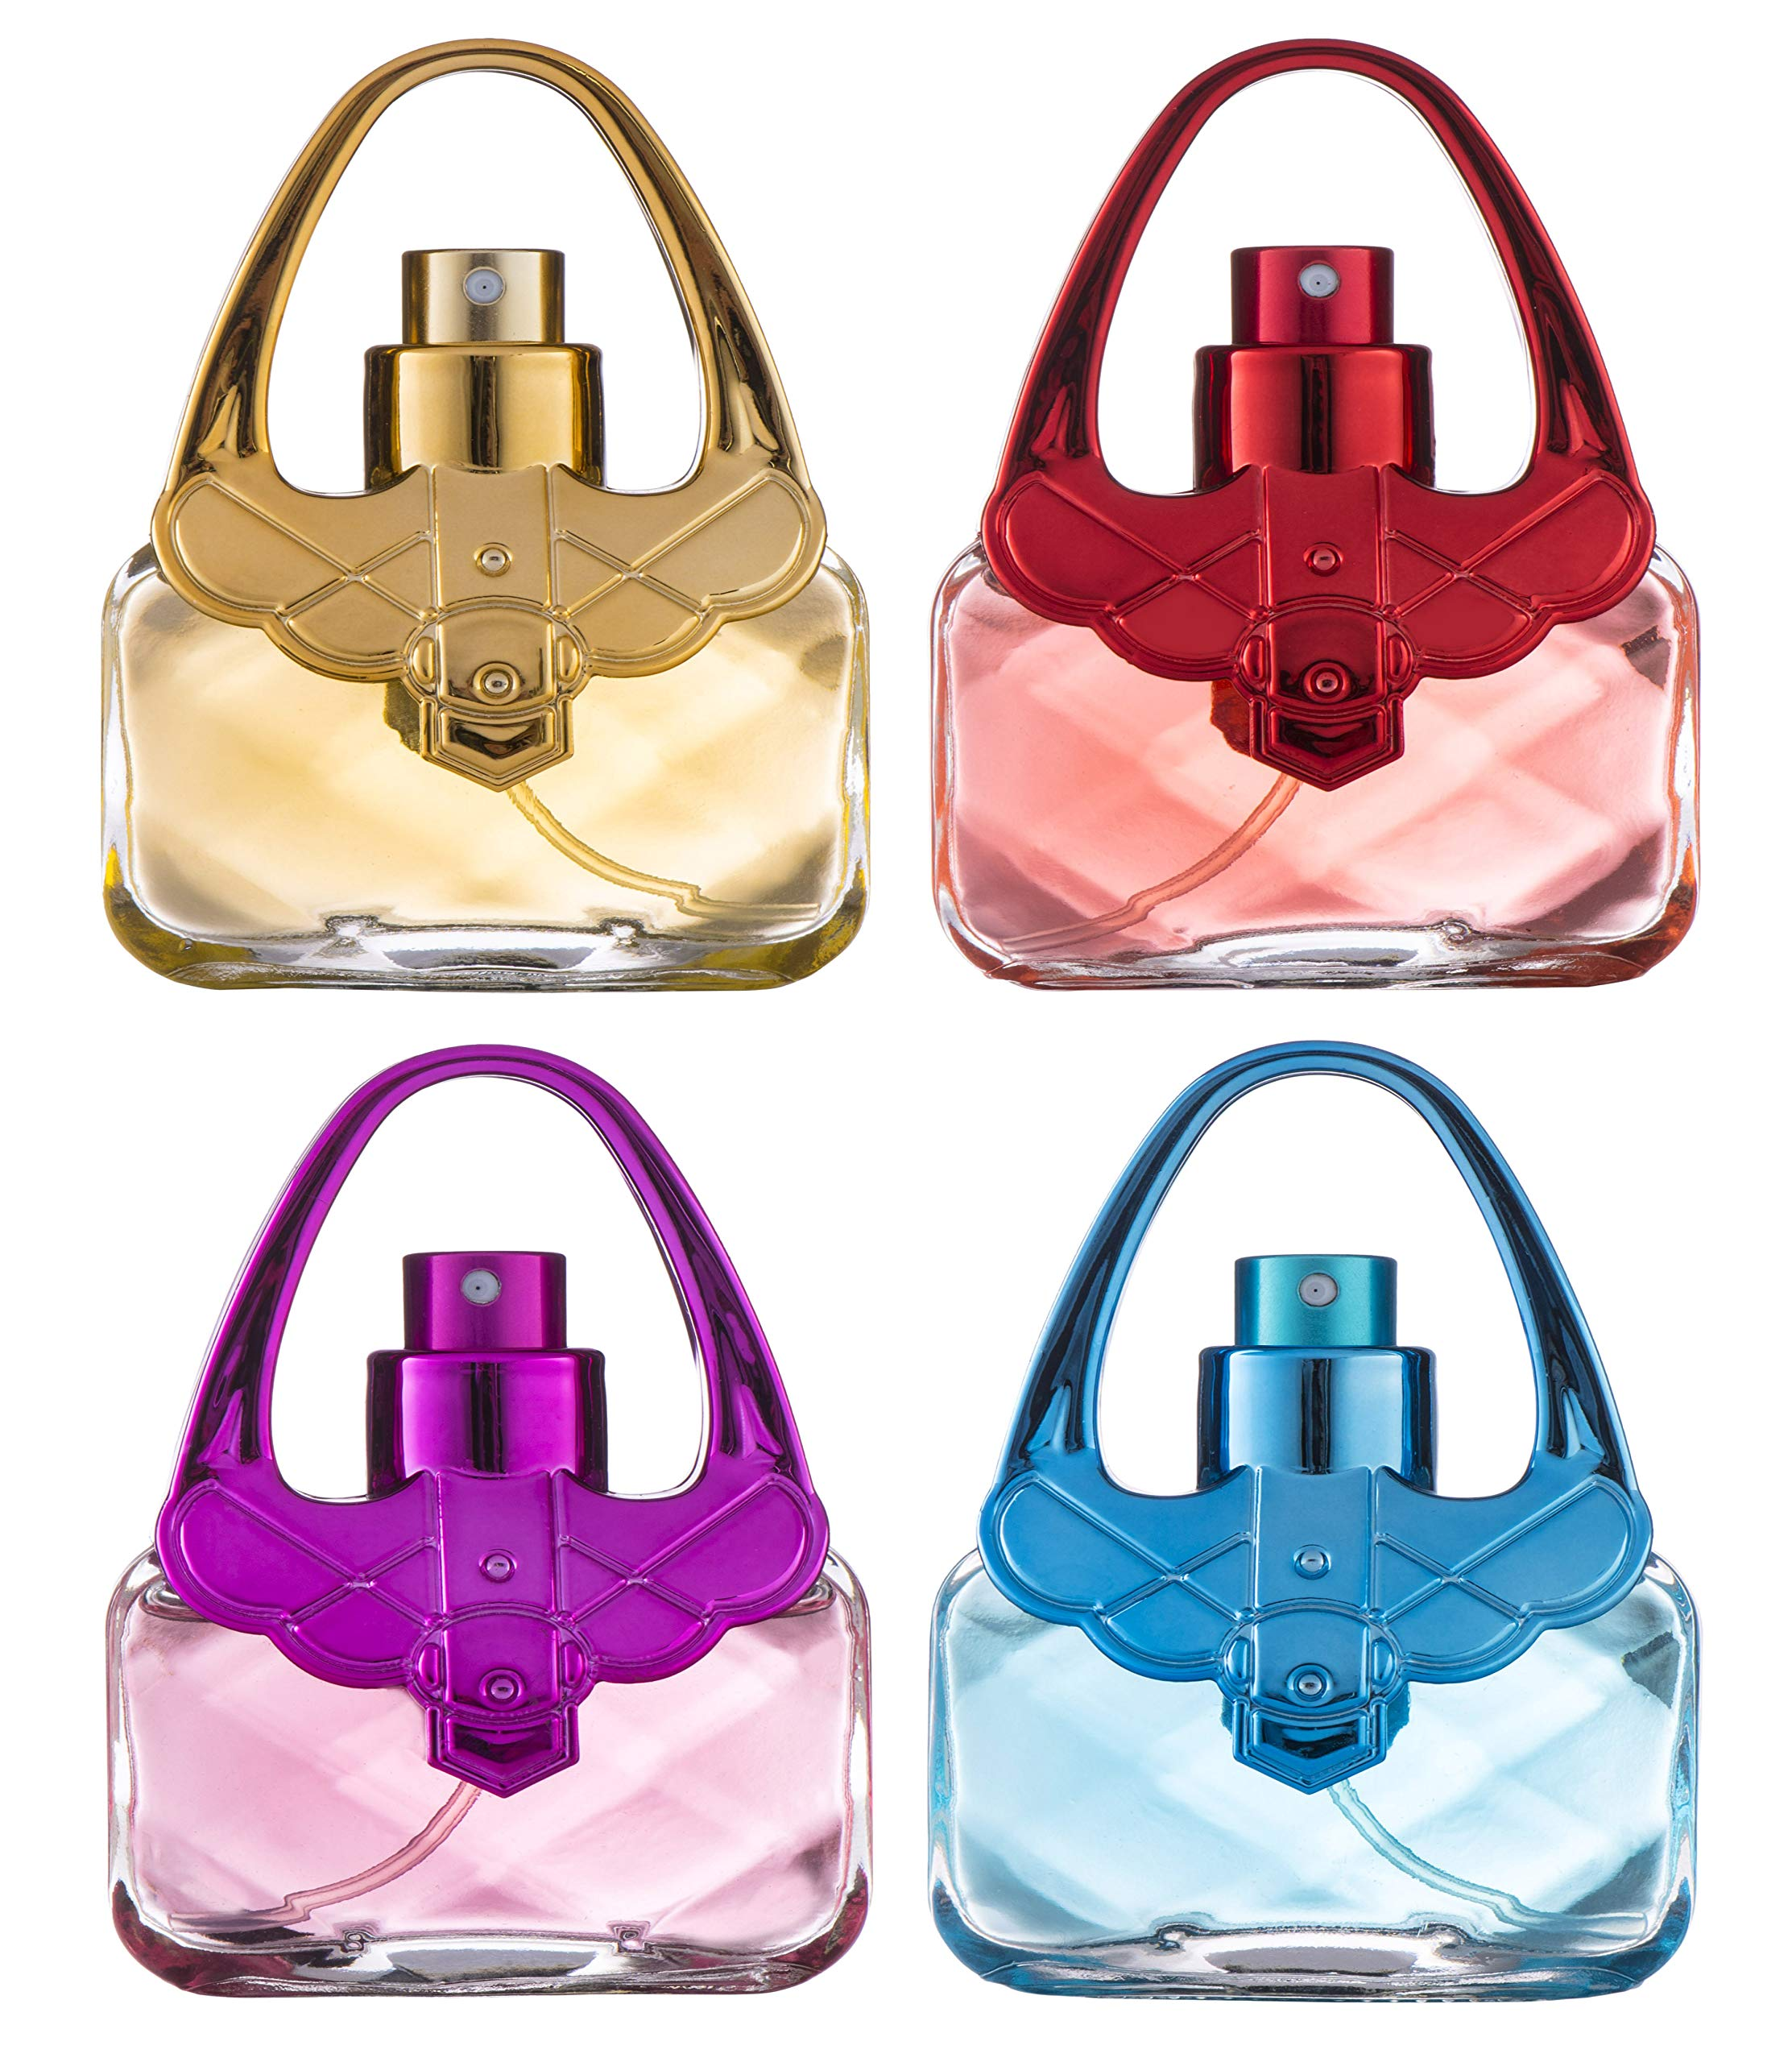 Eau De Fragrance Perfume Sets for Girls- Perfect Body Mist Gift Set for Teens and Kids - Purses - 4 Pack by SCENTED THINGS